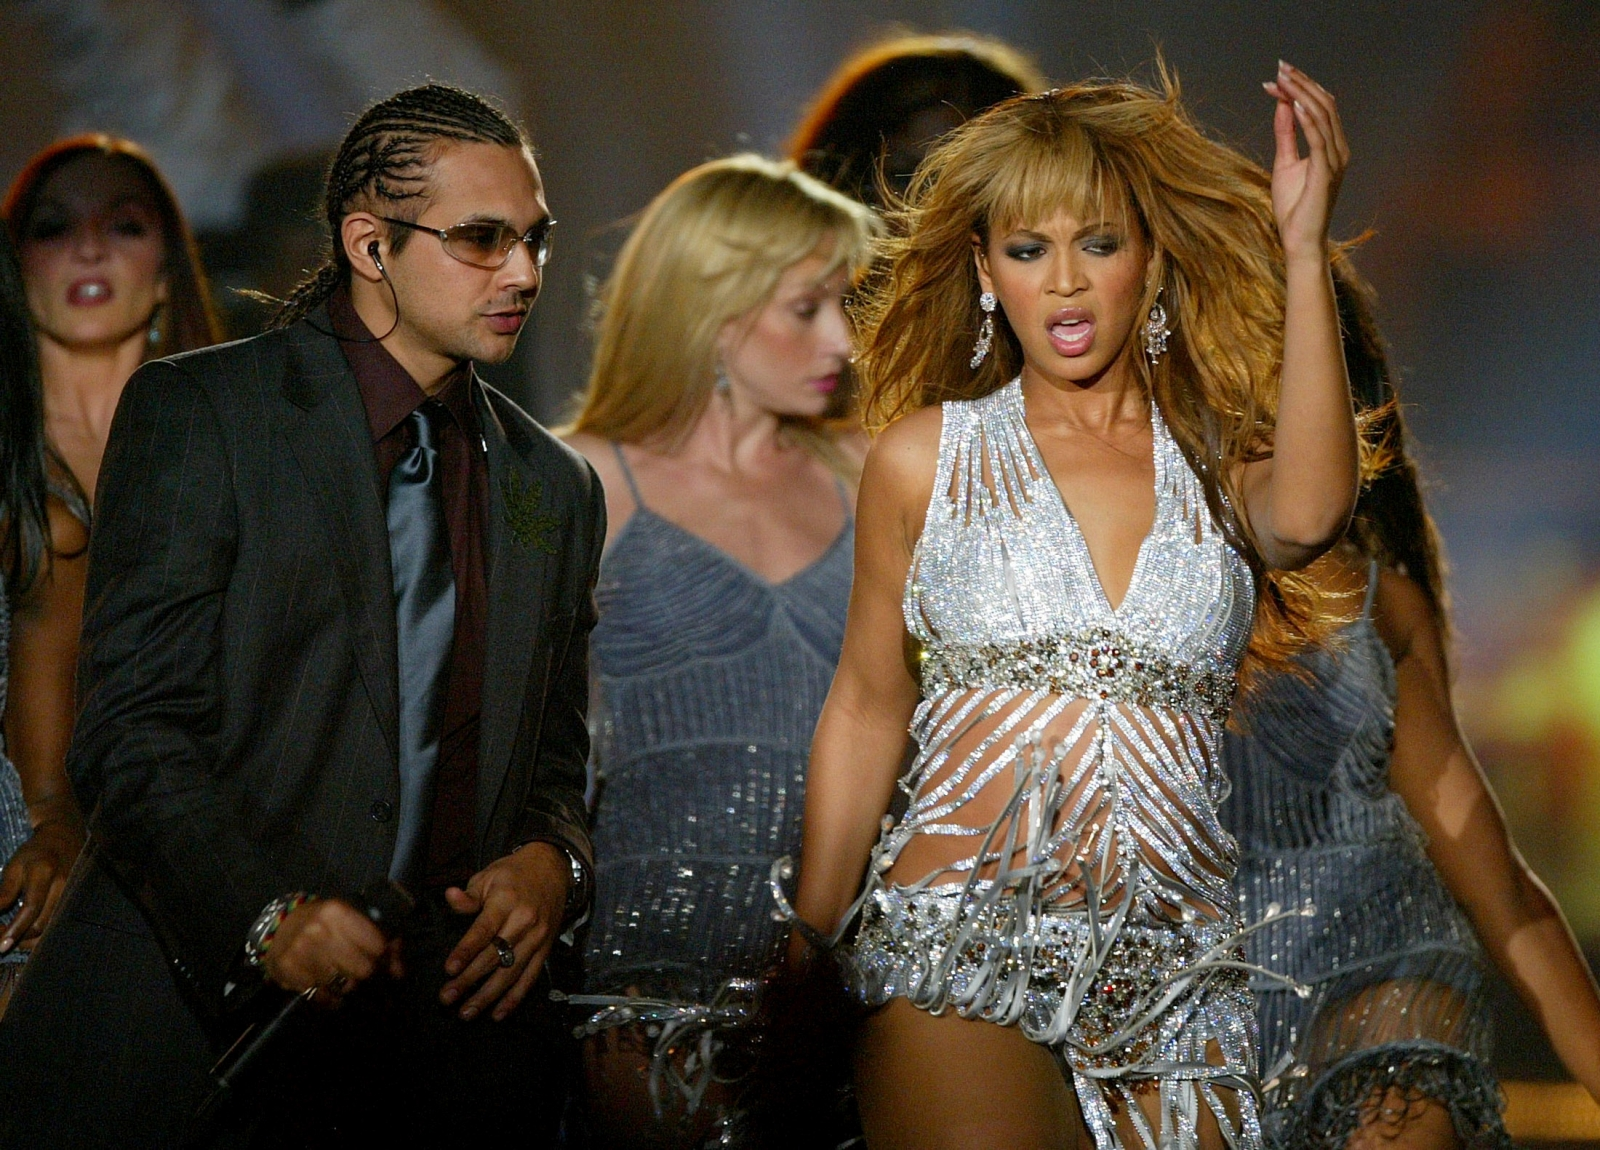 Beyonce: Baby Boy collaborator Sean Paul reflects on 'crazy' affair rumours